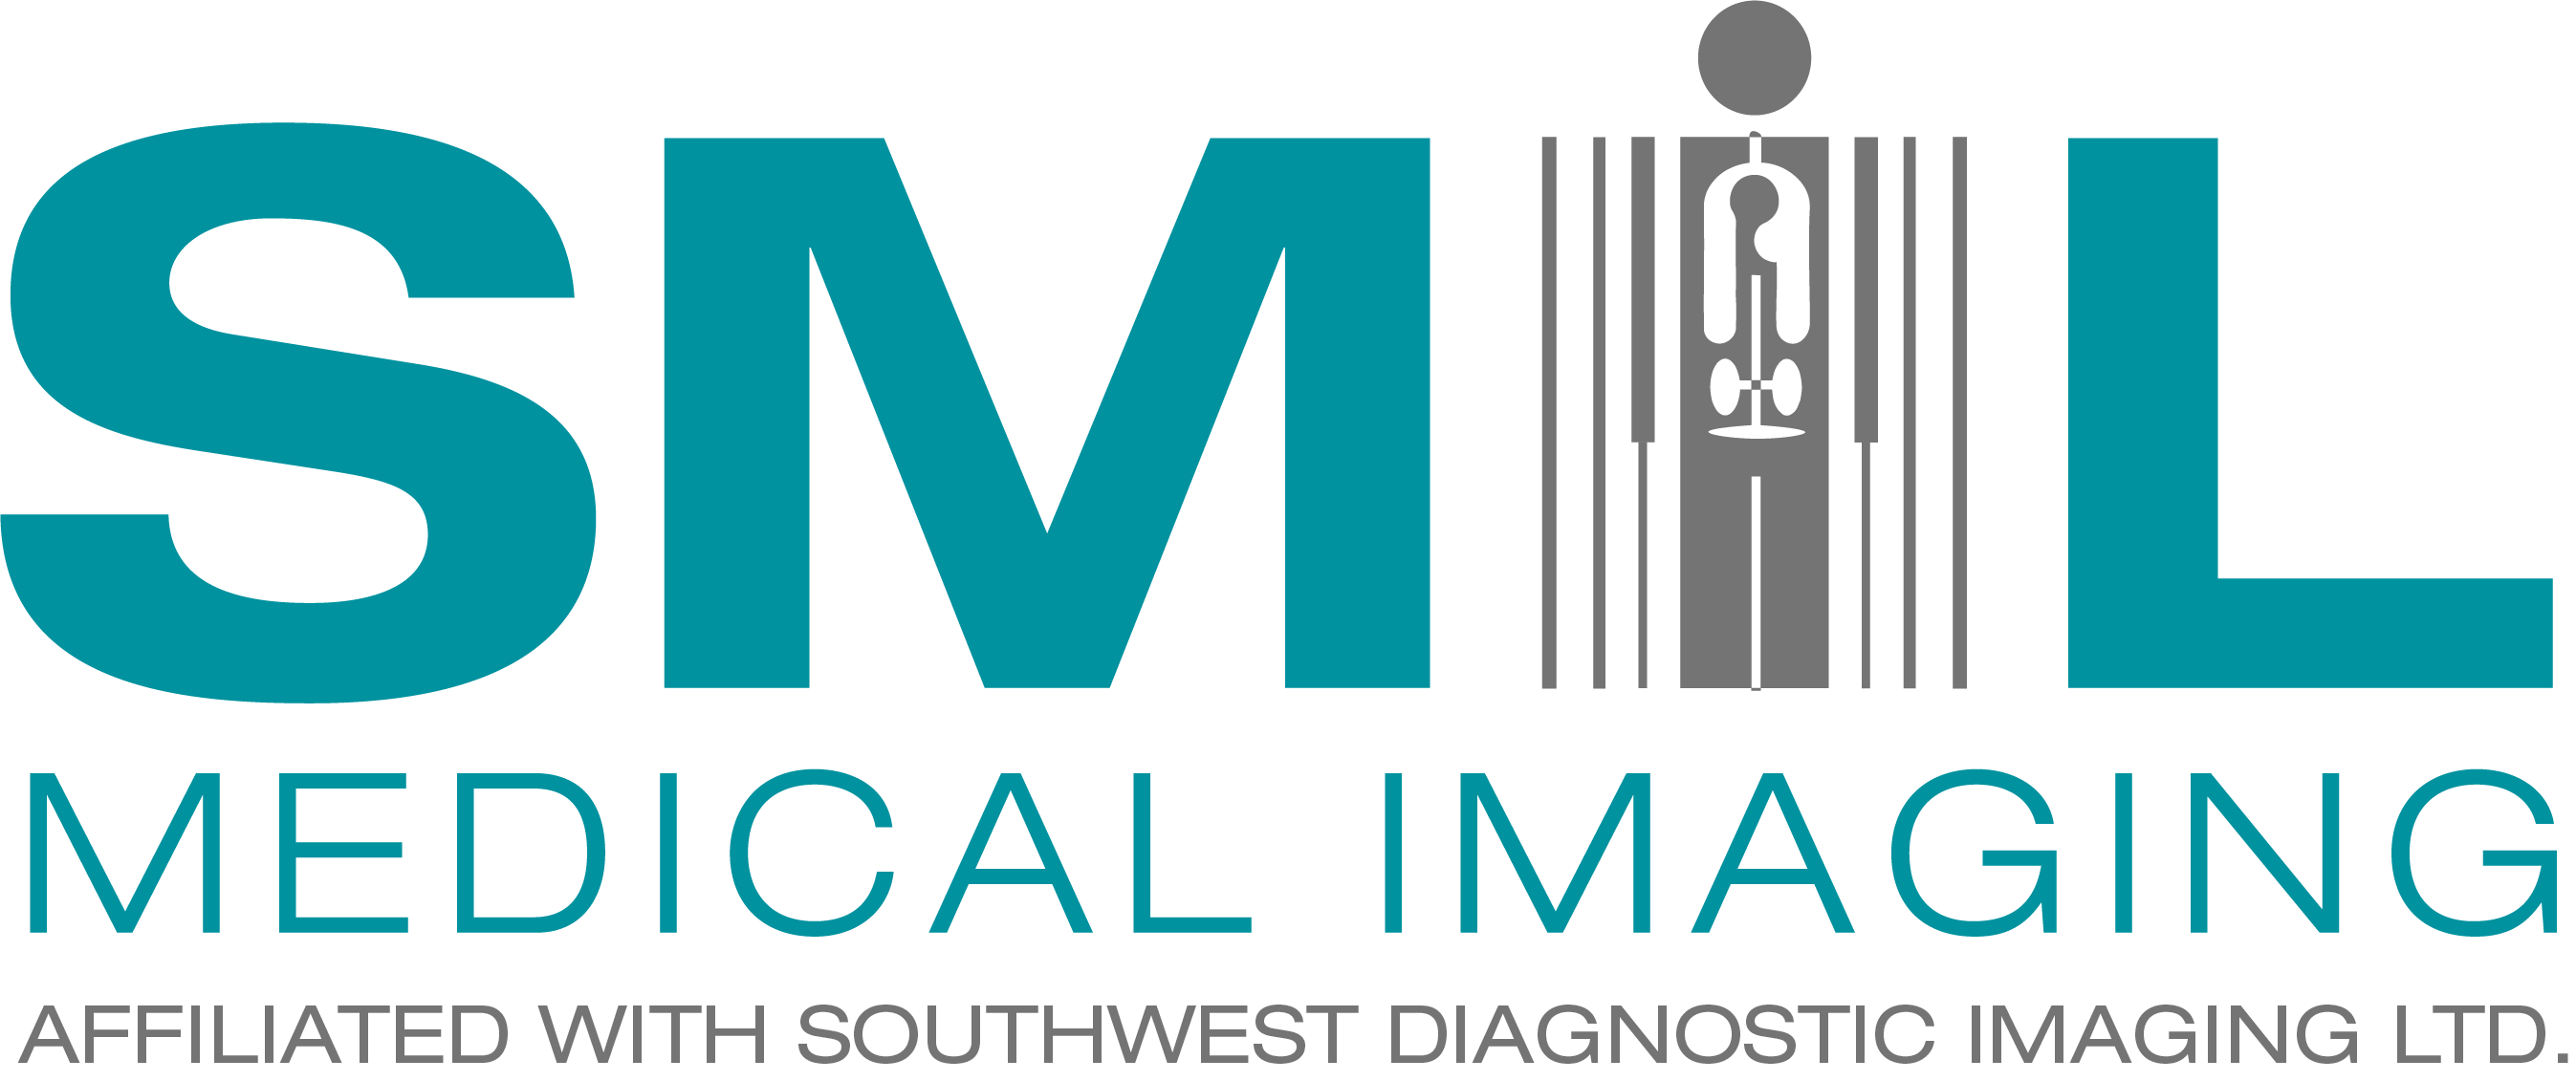 Scottsdale Medical Imaging